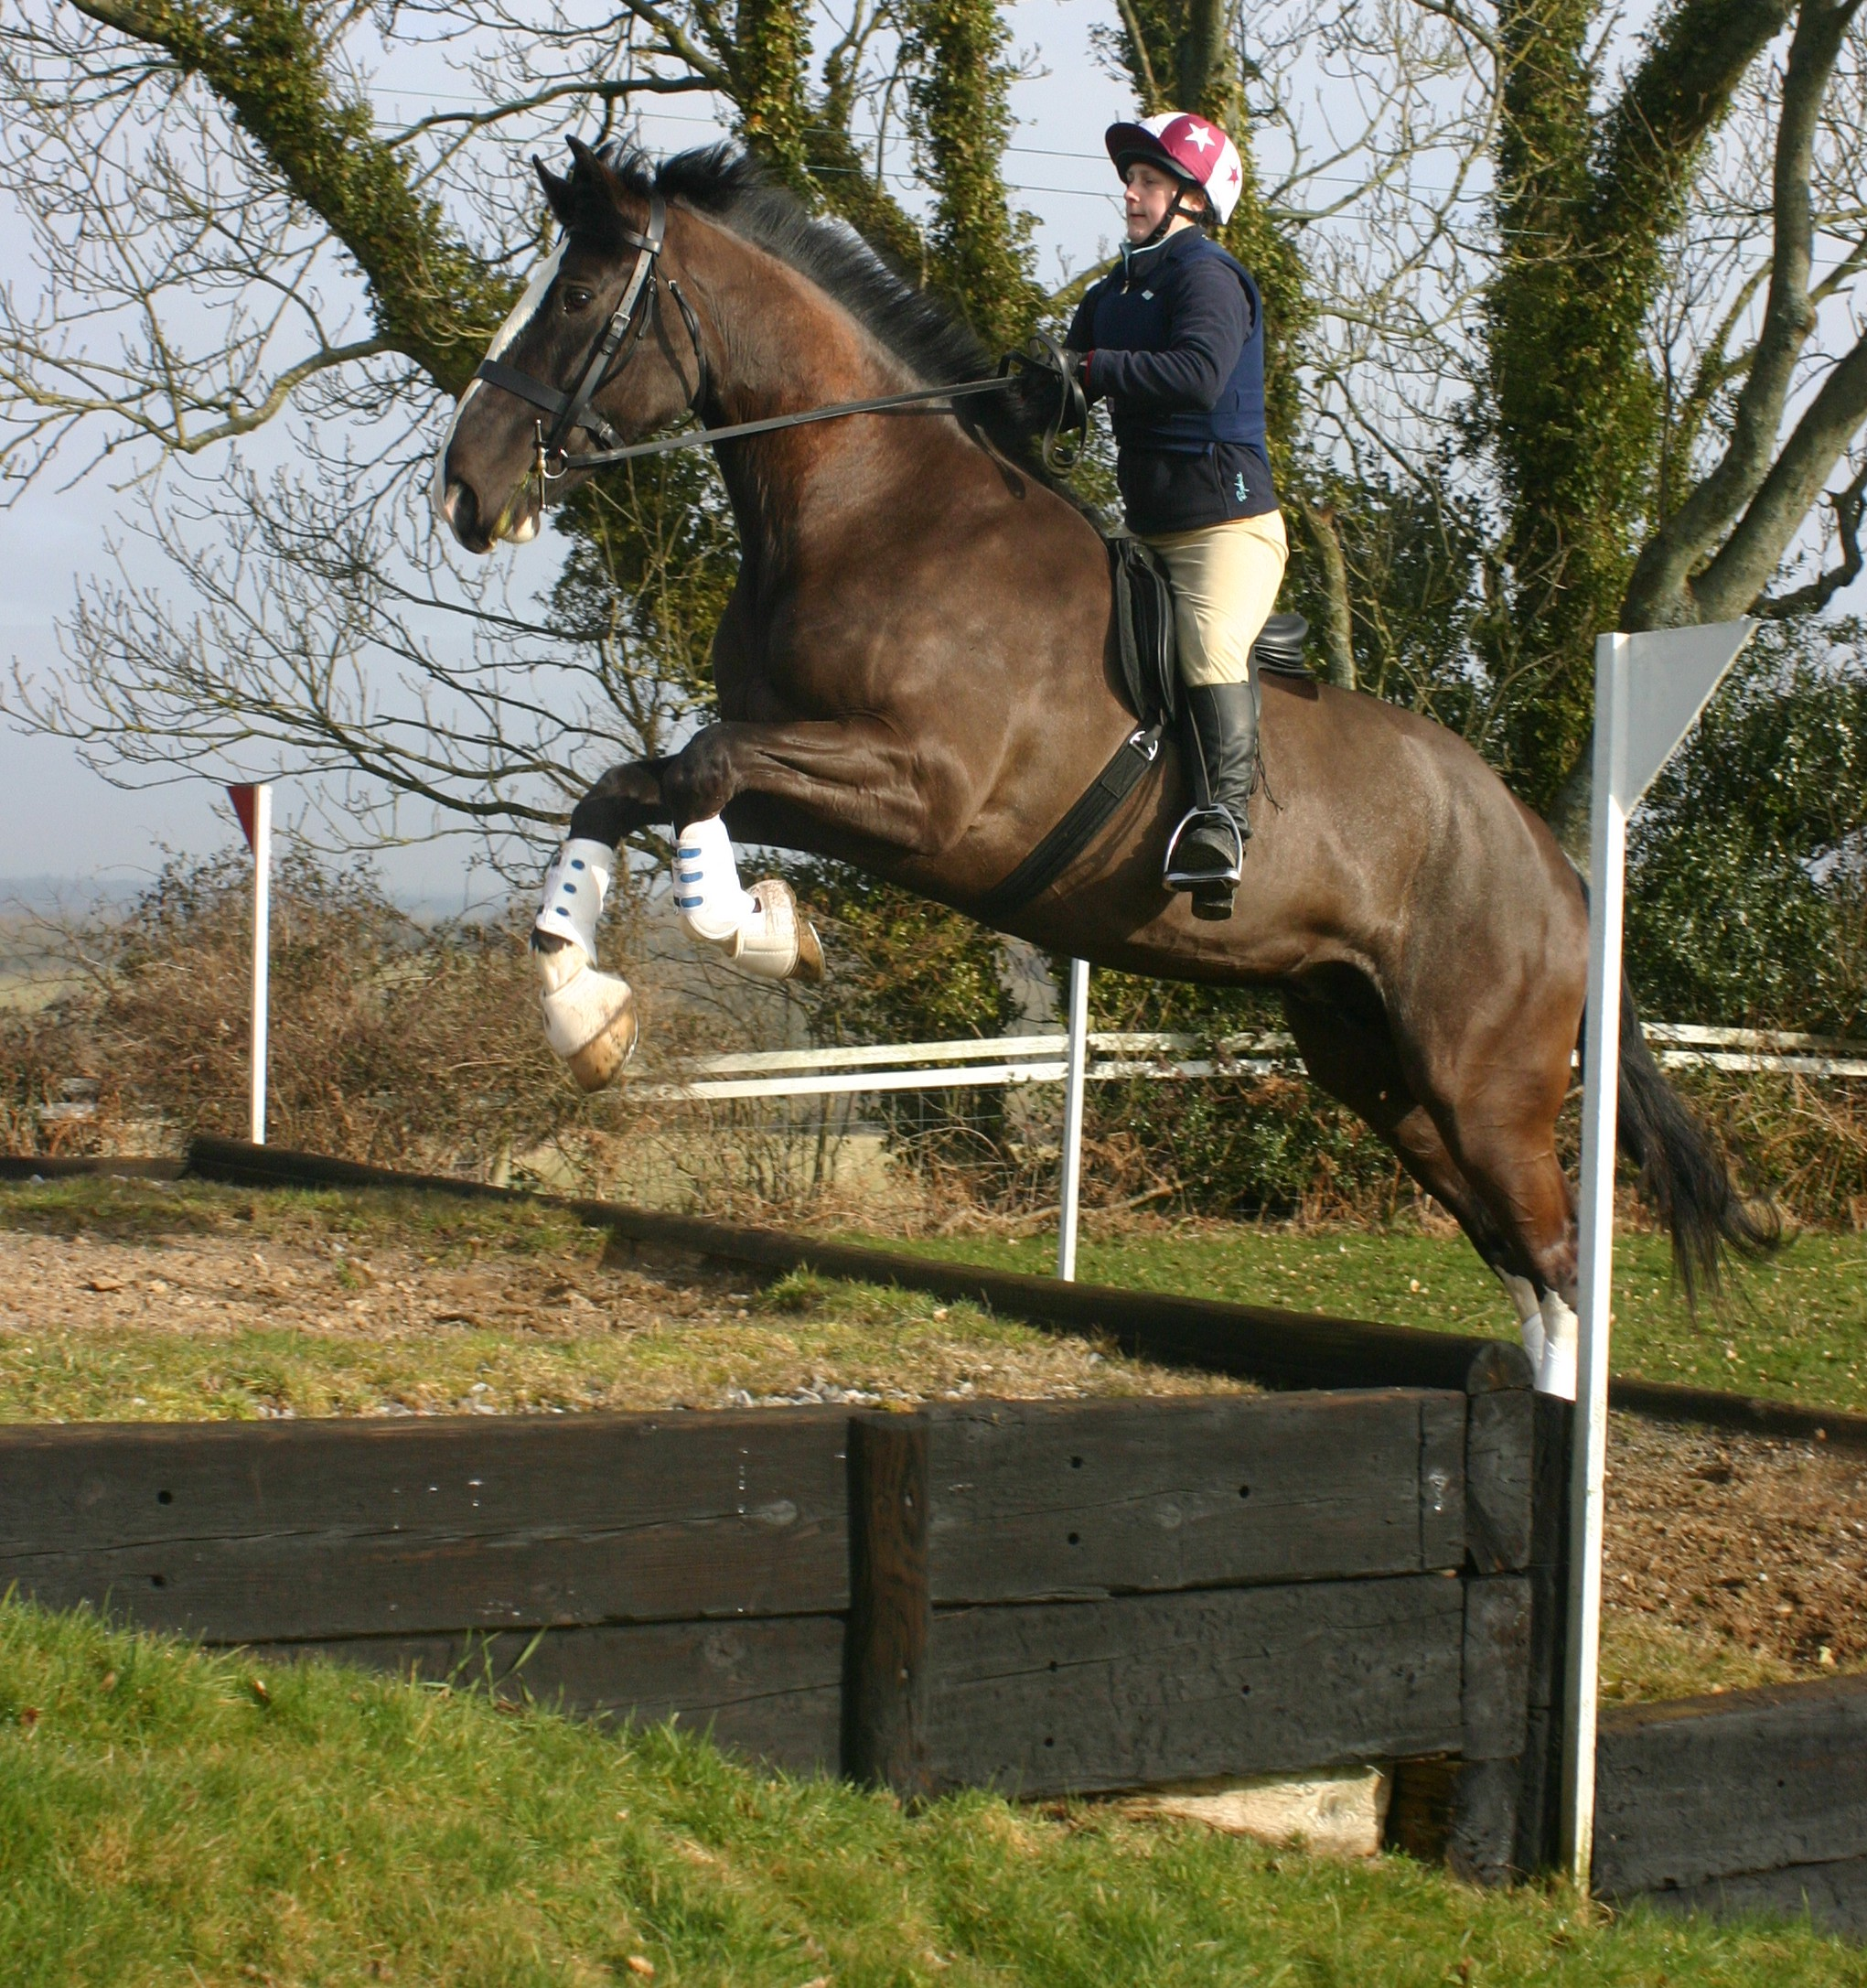 Horse Jumping Obstacles Wikipedia